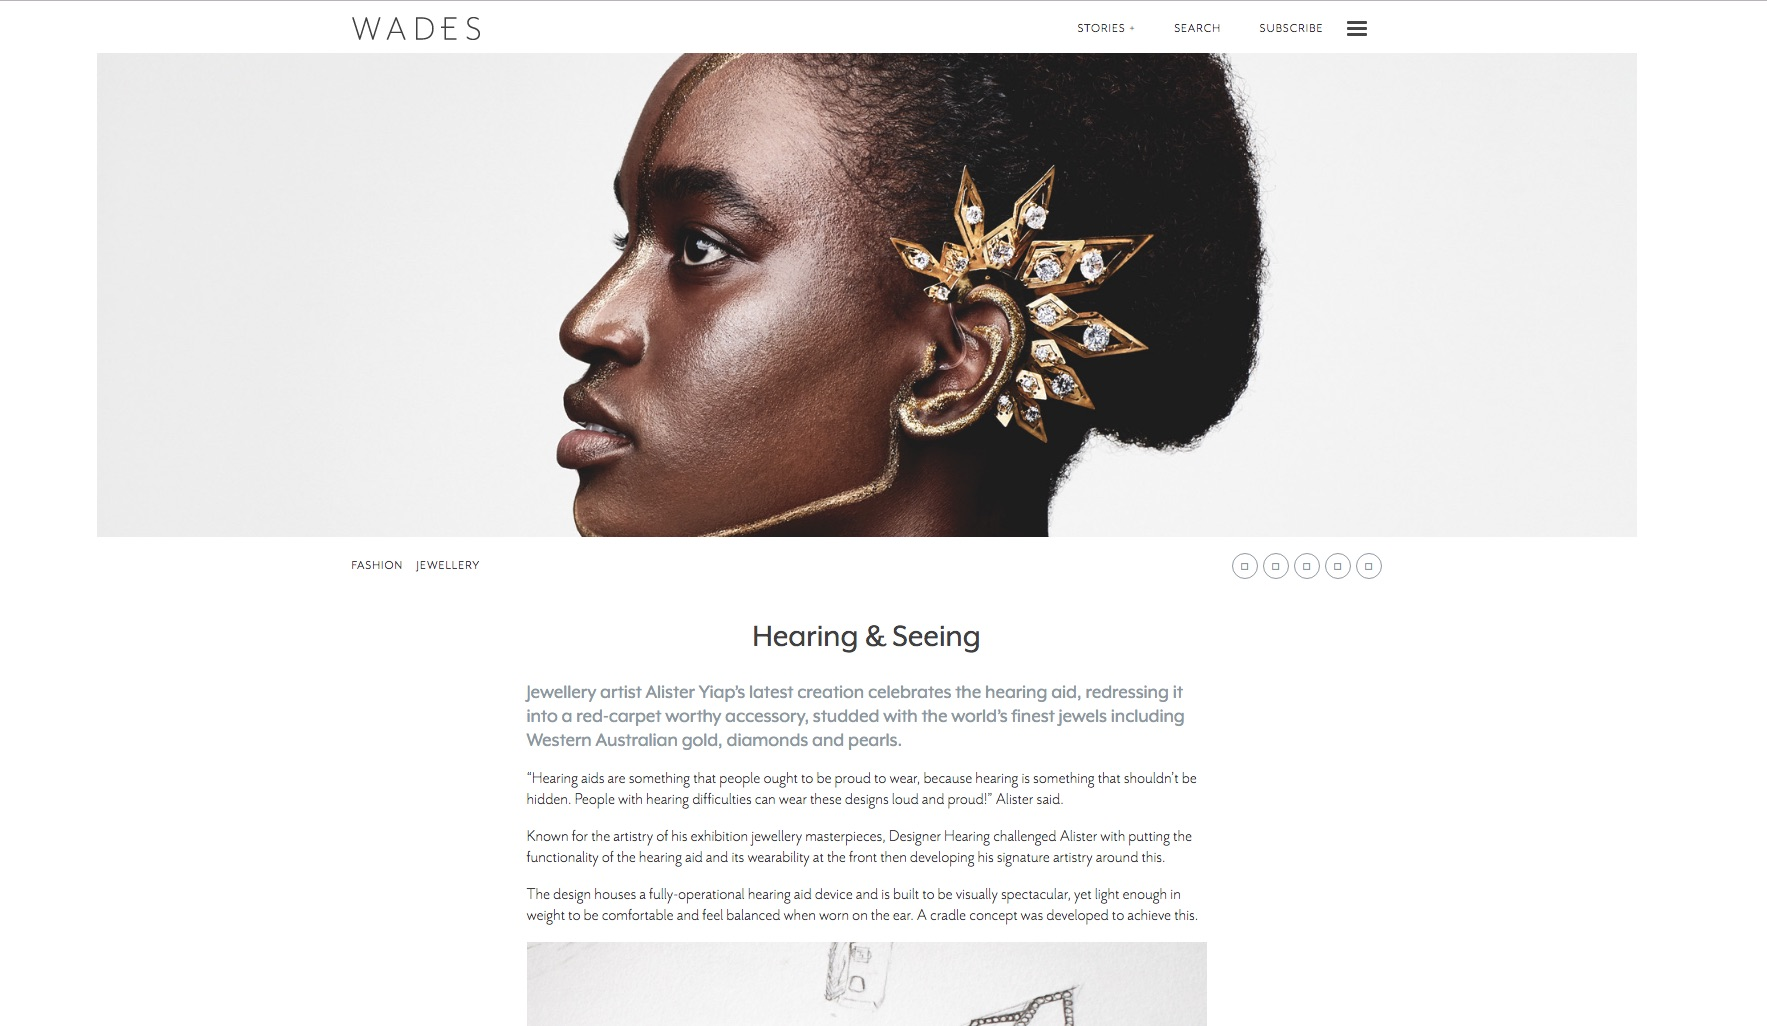 Alister Yiap's Designer Hearing Project featured in Wades Online